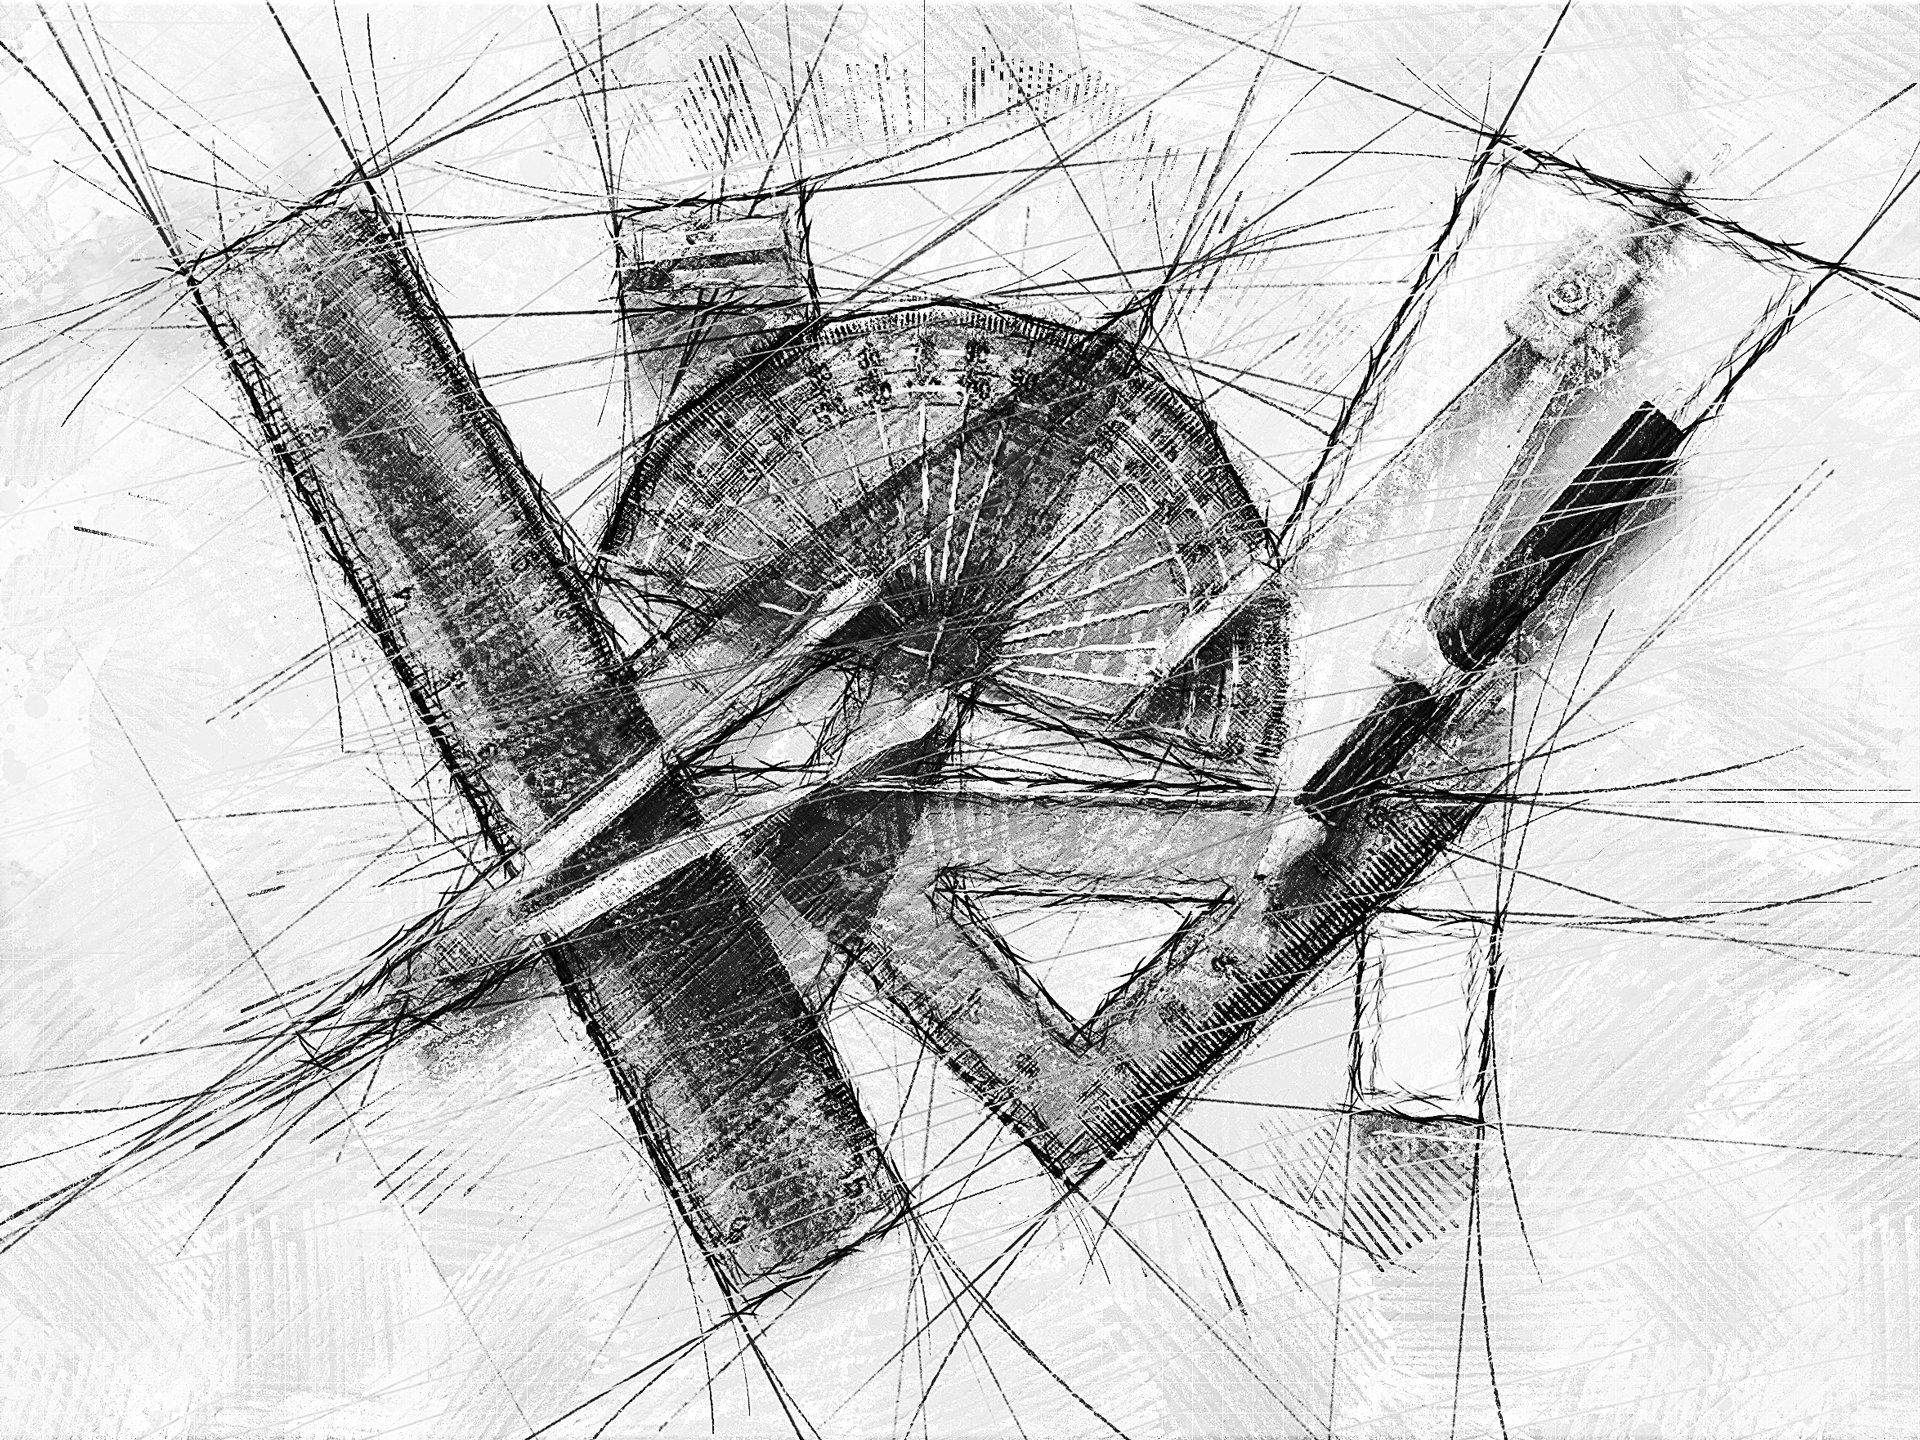 Animated Pencil Sketch Fx Photoshop Add On Photoshop Pencil Sketch Photoshop Actions